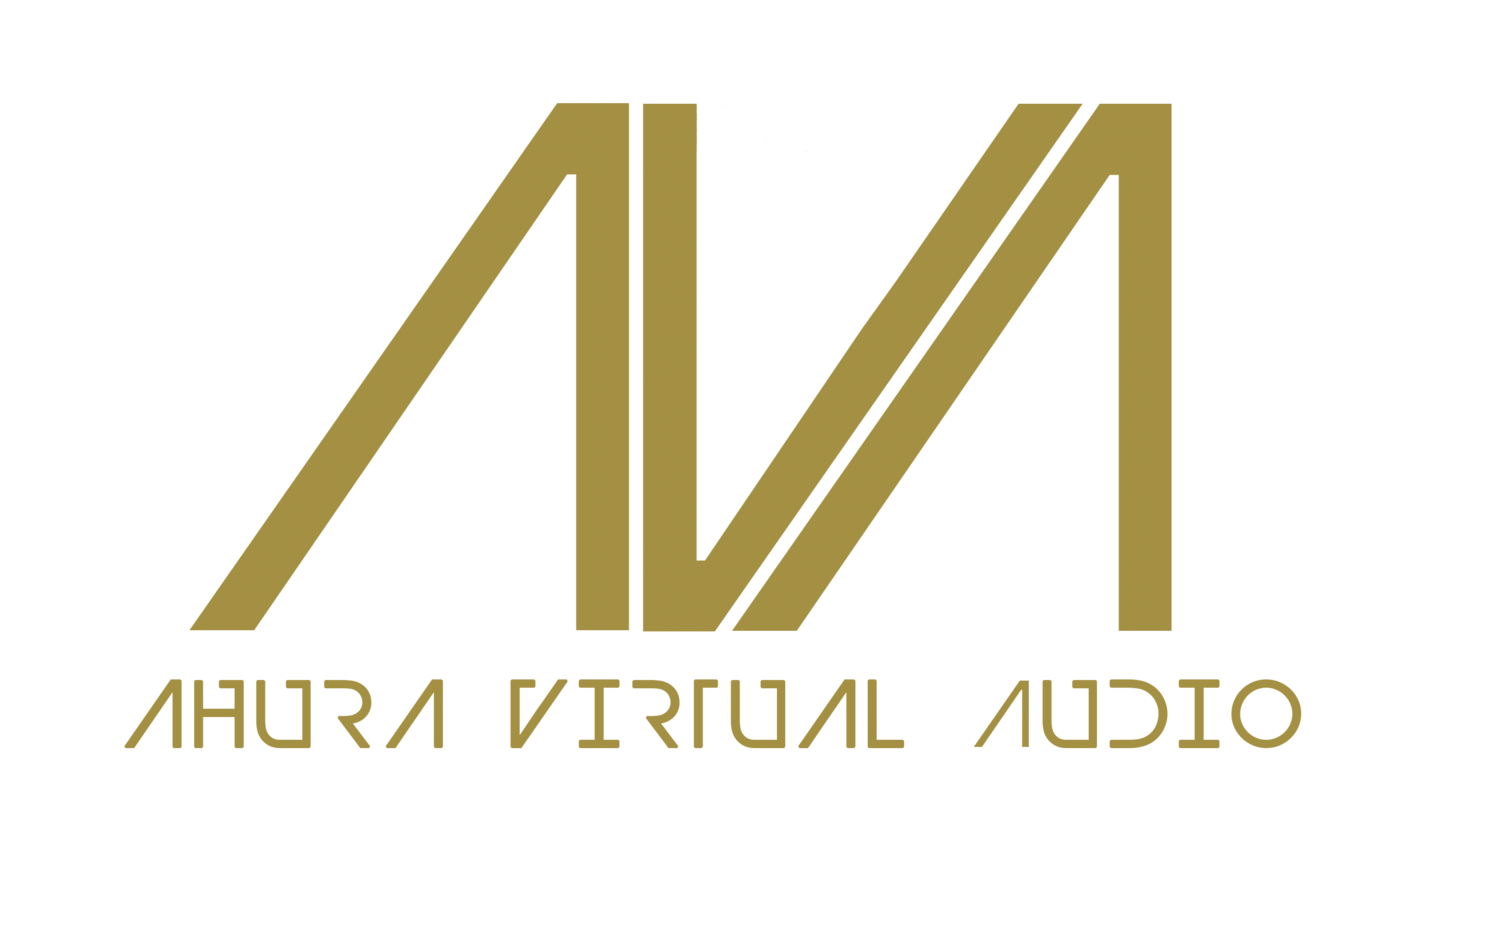 Ahura Virtual Audio